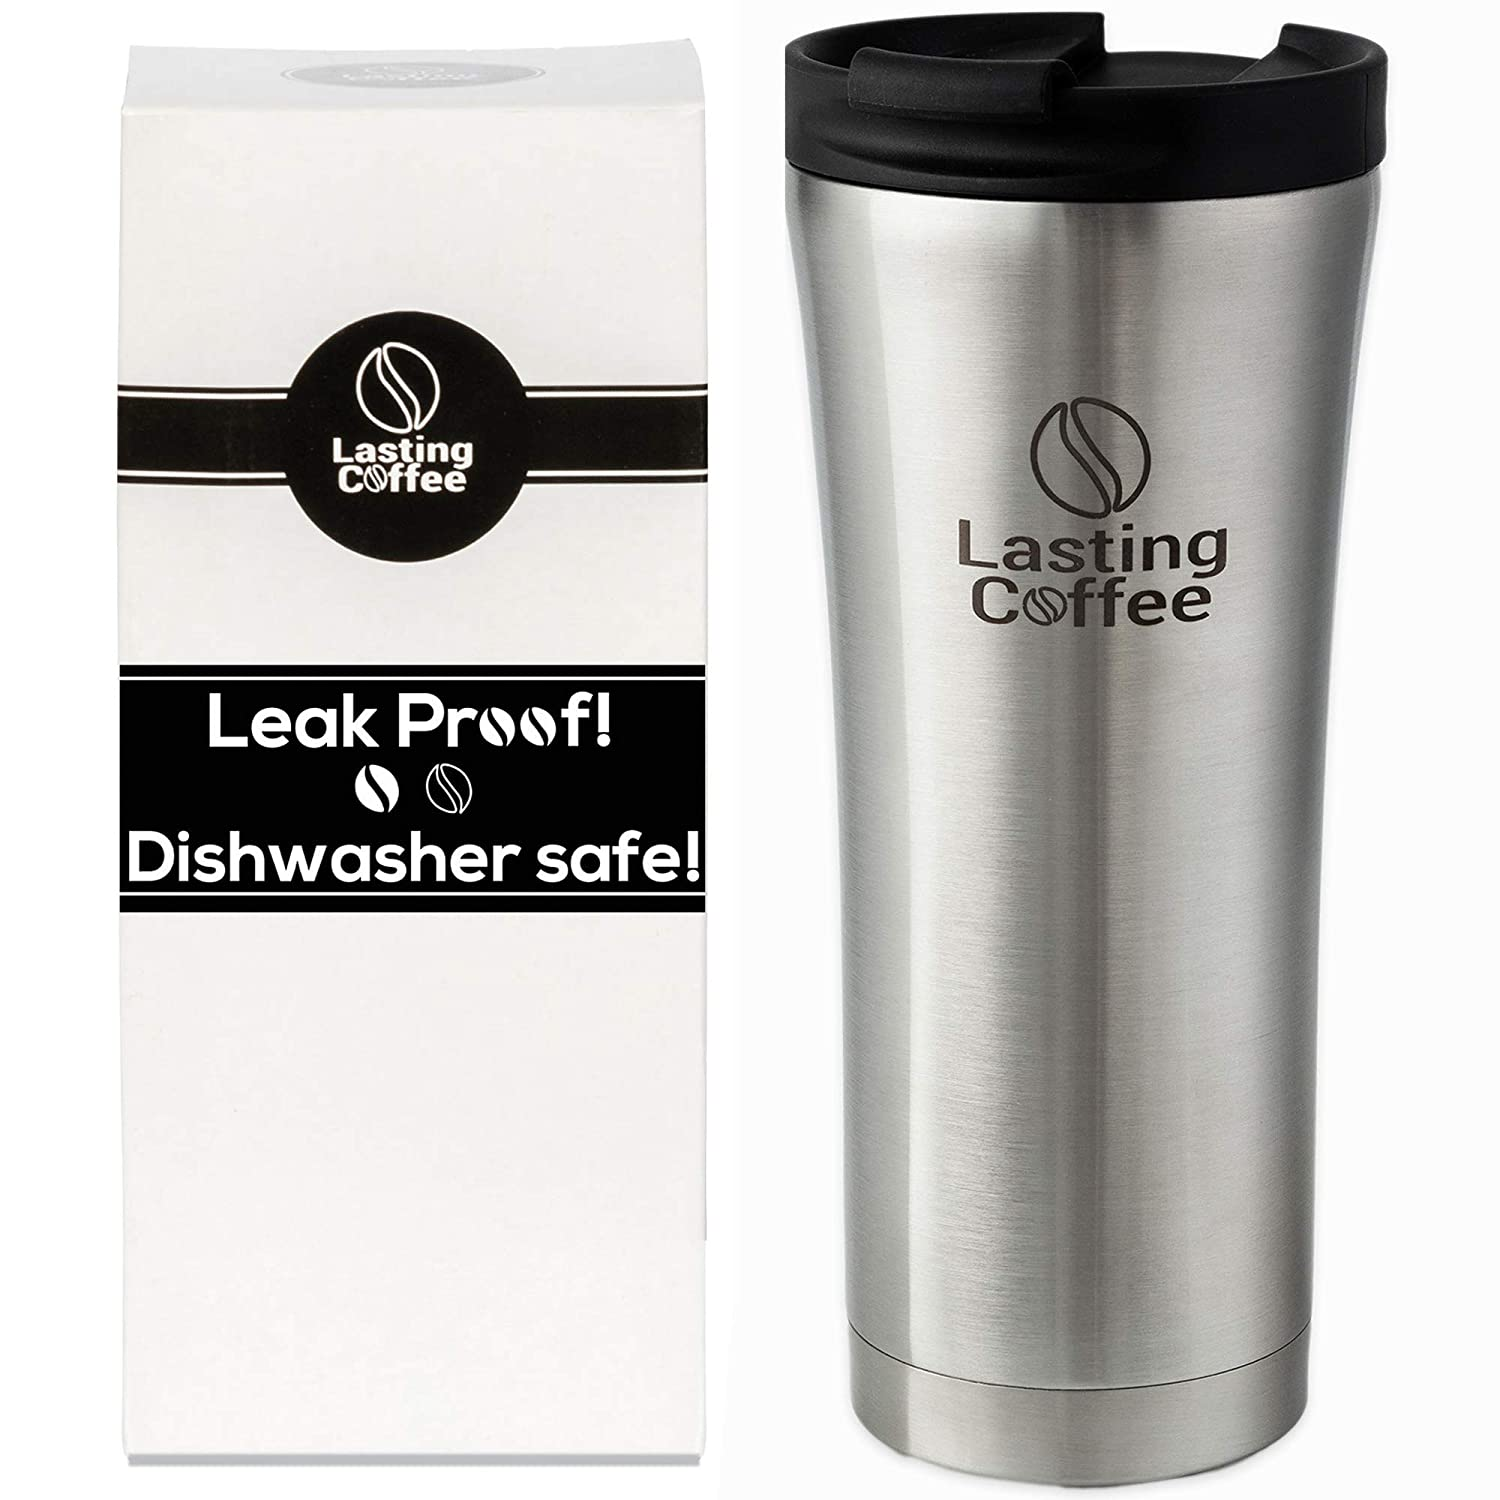 Lasting Coffee Leak Proof Dishwasher Safe Double Wall Vacuum Insulated Stainless Steel Travel Mug, 16 oz (Silver)